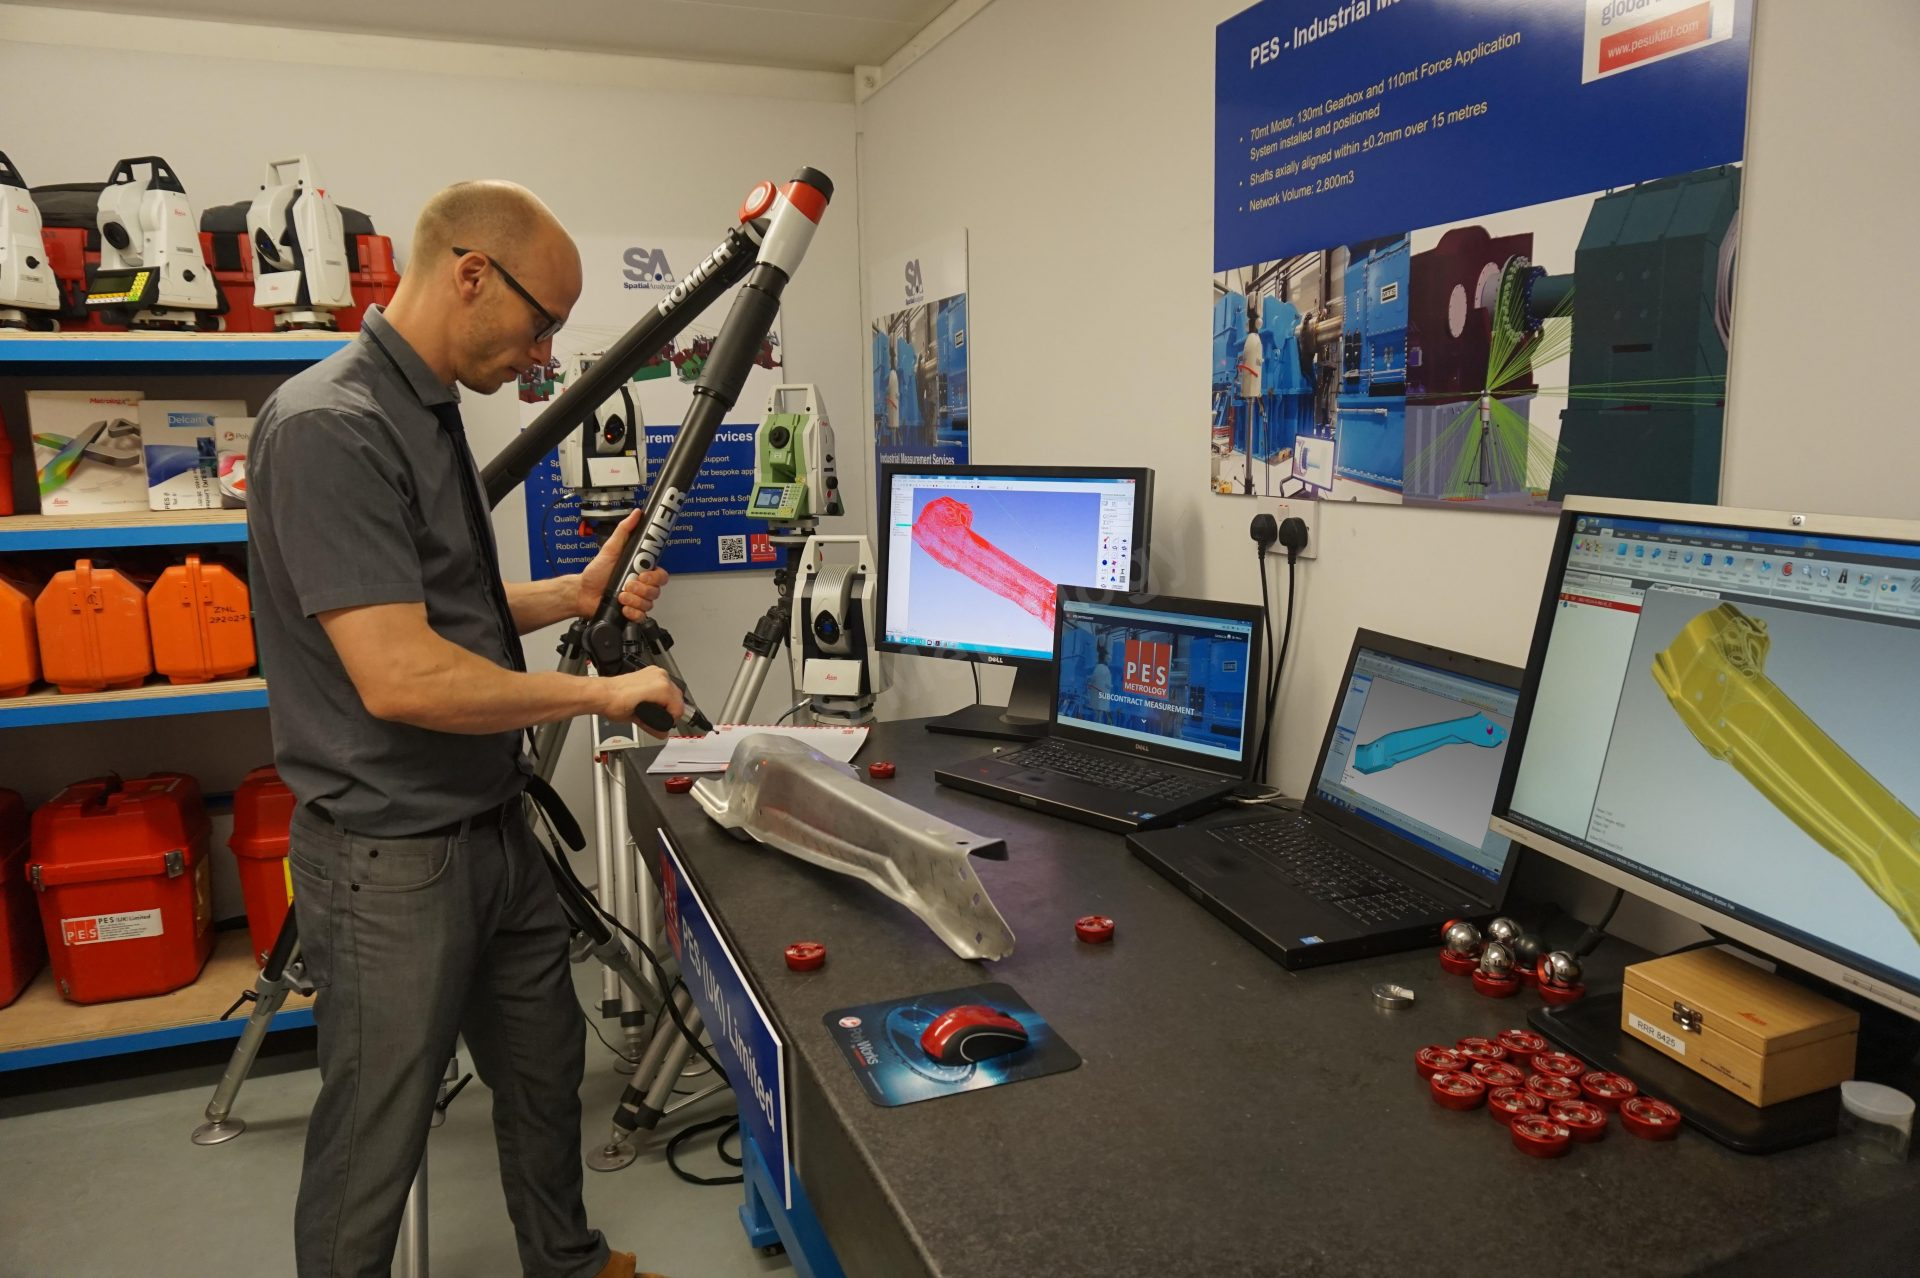 PES Metrology - Portable CMM Arms training